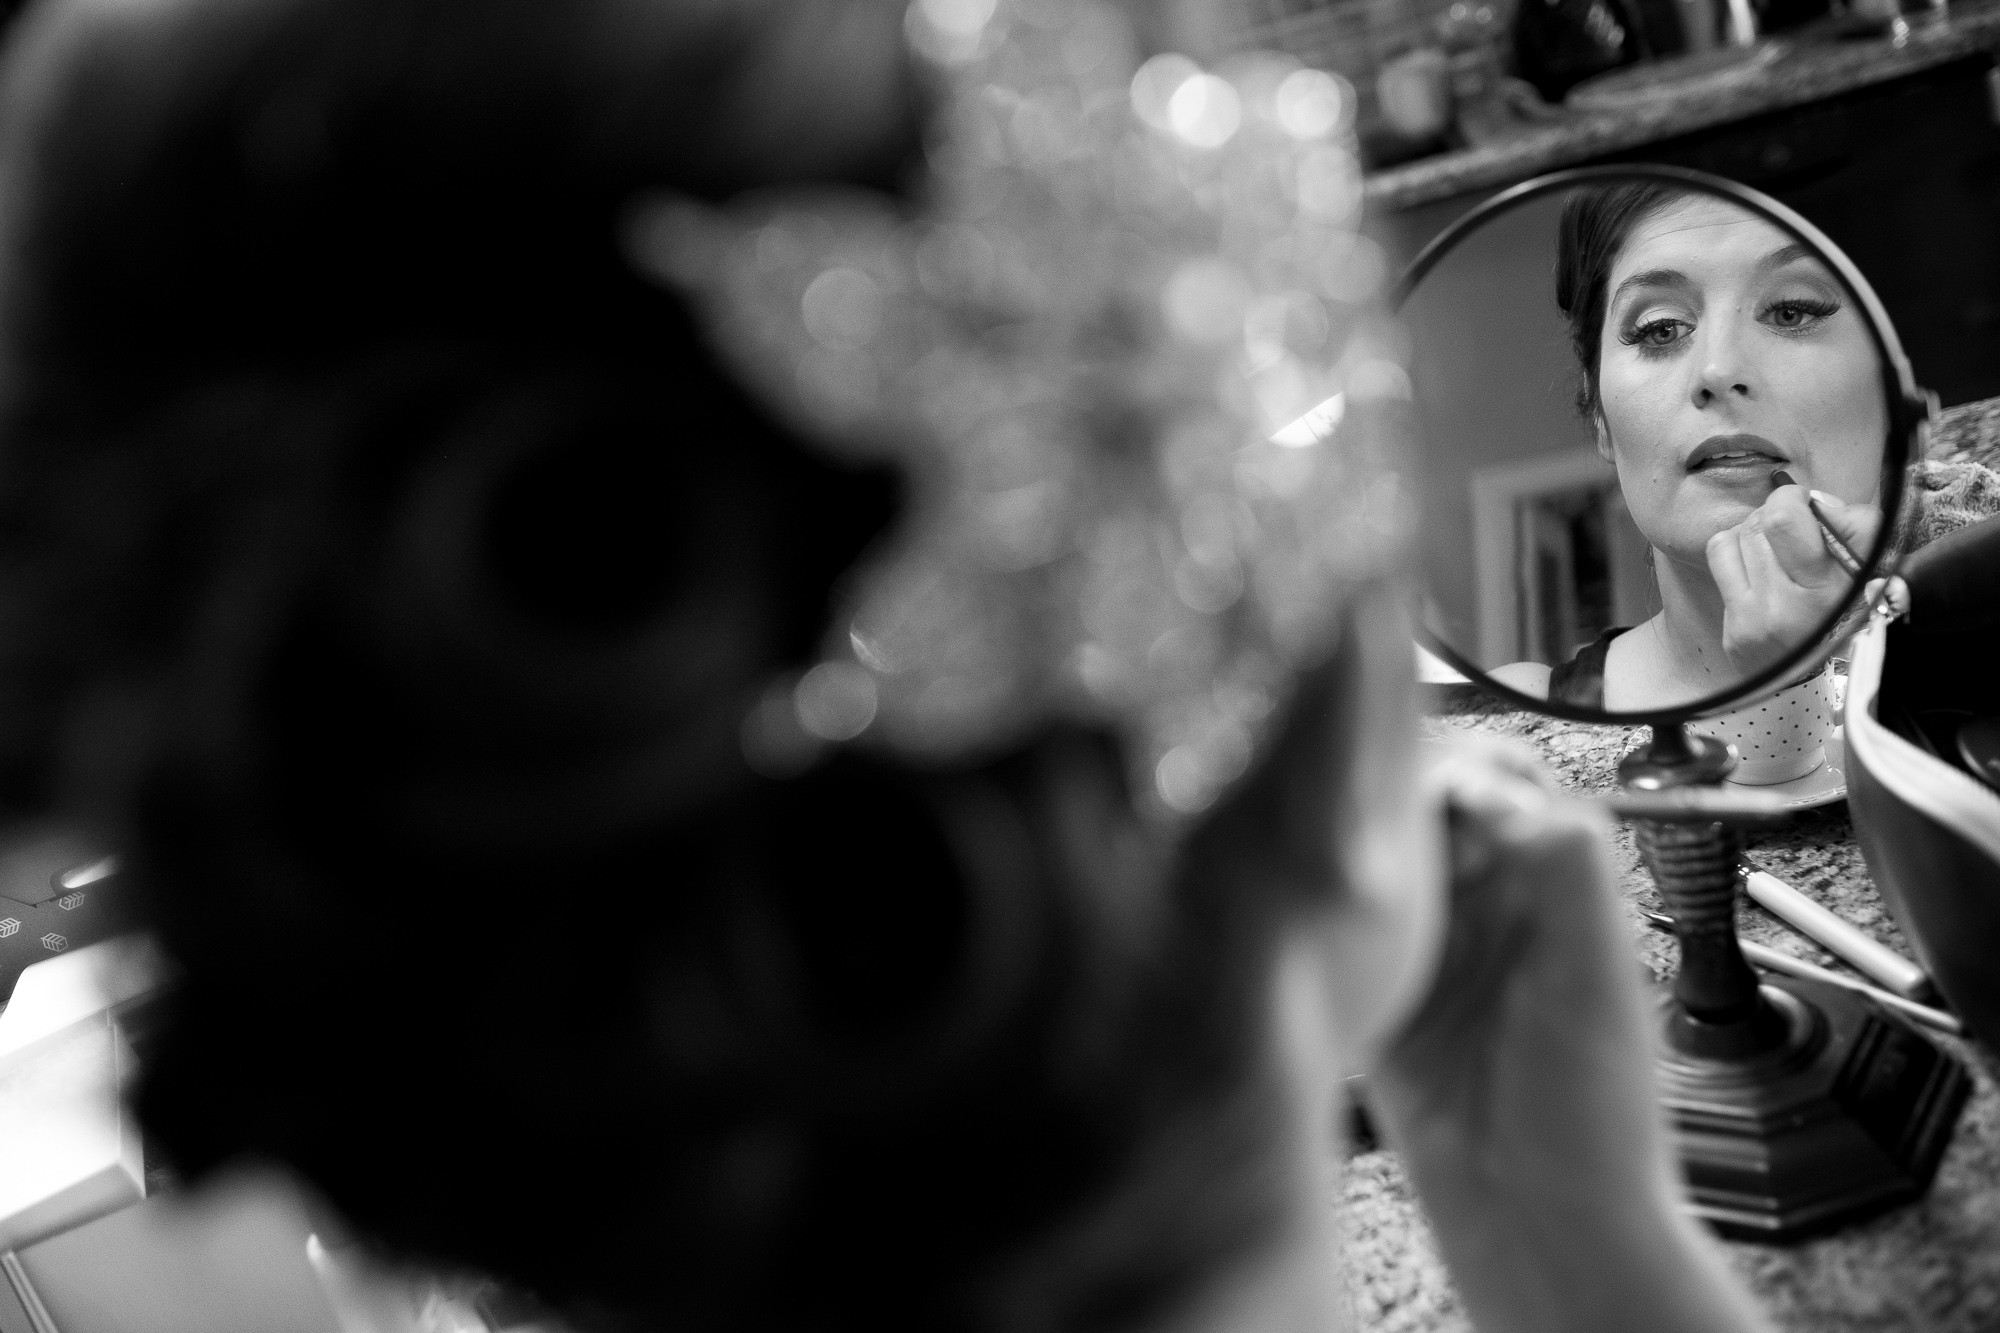 Joanna adjusts her make up before putting her wedding dress on before her wedding ceremony.